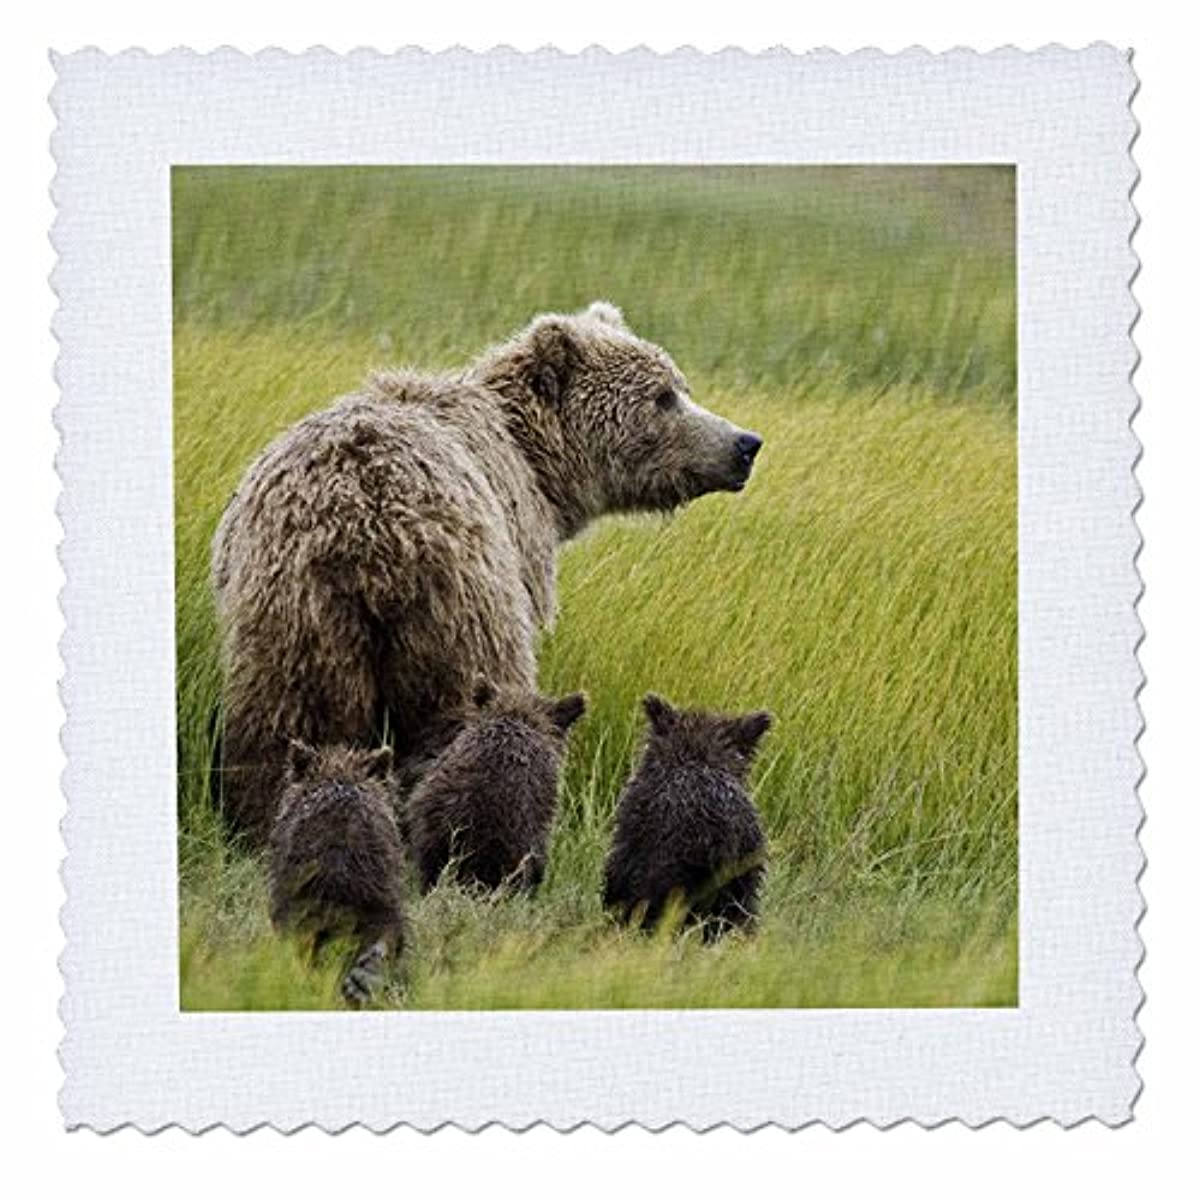 3dRose qs_87351_3 Alaska, Lake Clark NP, grizzly bear - US02 BJA0125 - Jaynes Gallery - Quilt Square, 8 by 8-Inch